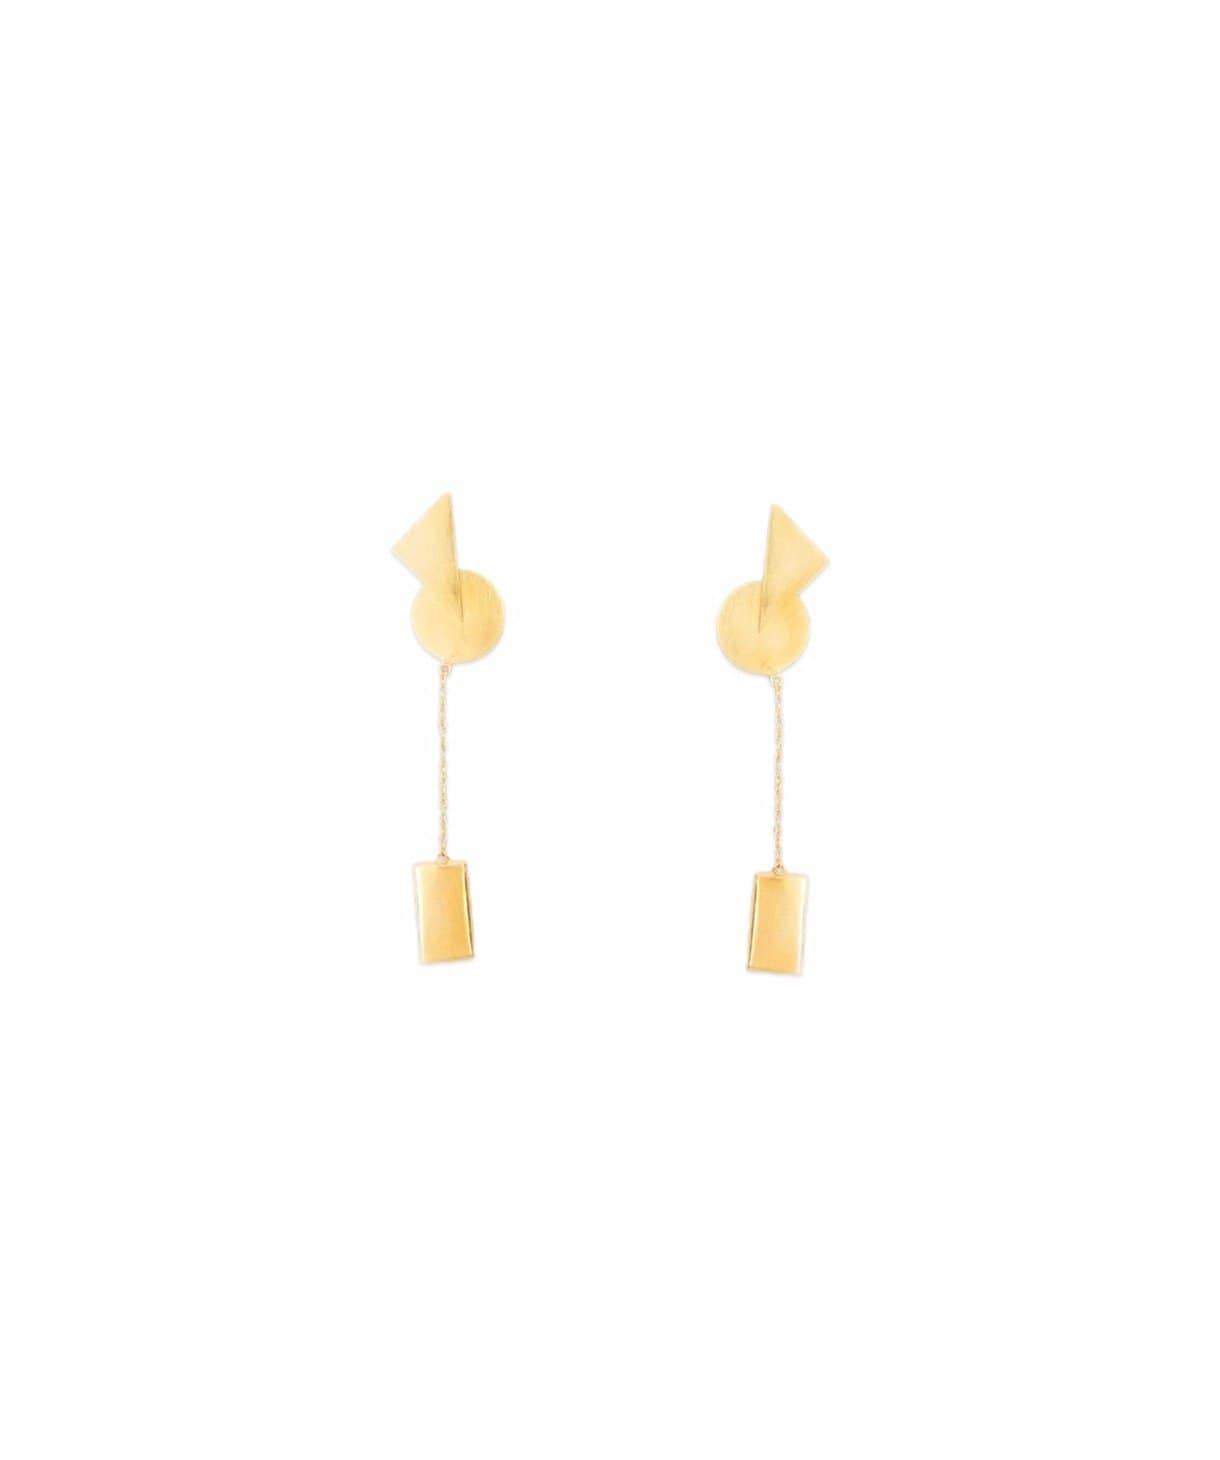 Geometric Gold Earrings - Uptownie